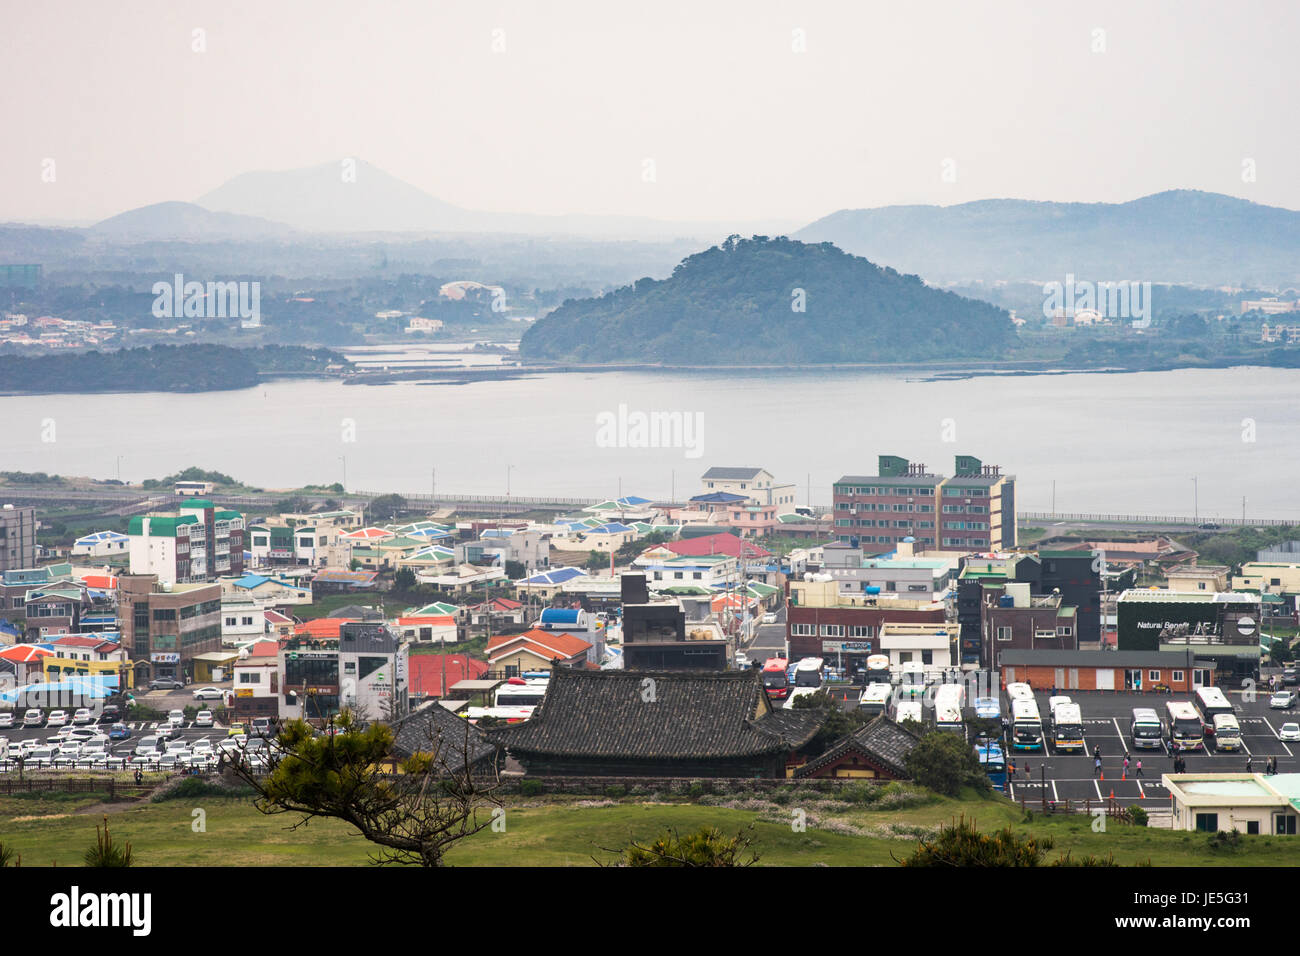 The view on a grey day from Seongsan Ilchulbong looking back onto the main Jeju island. - Stock Image